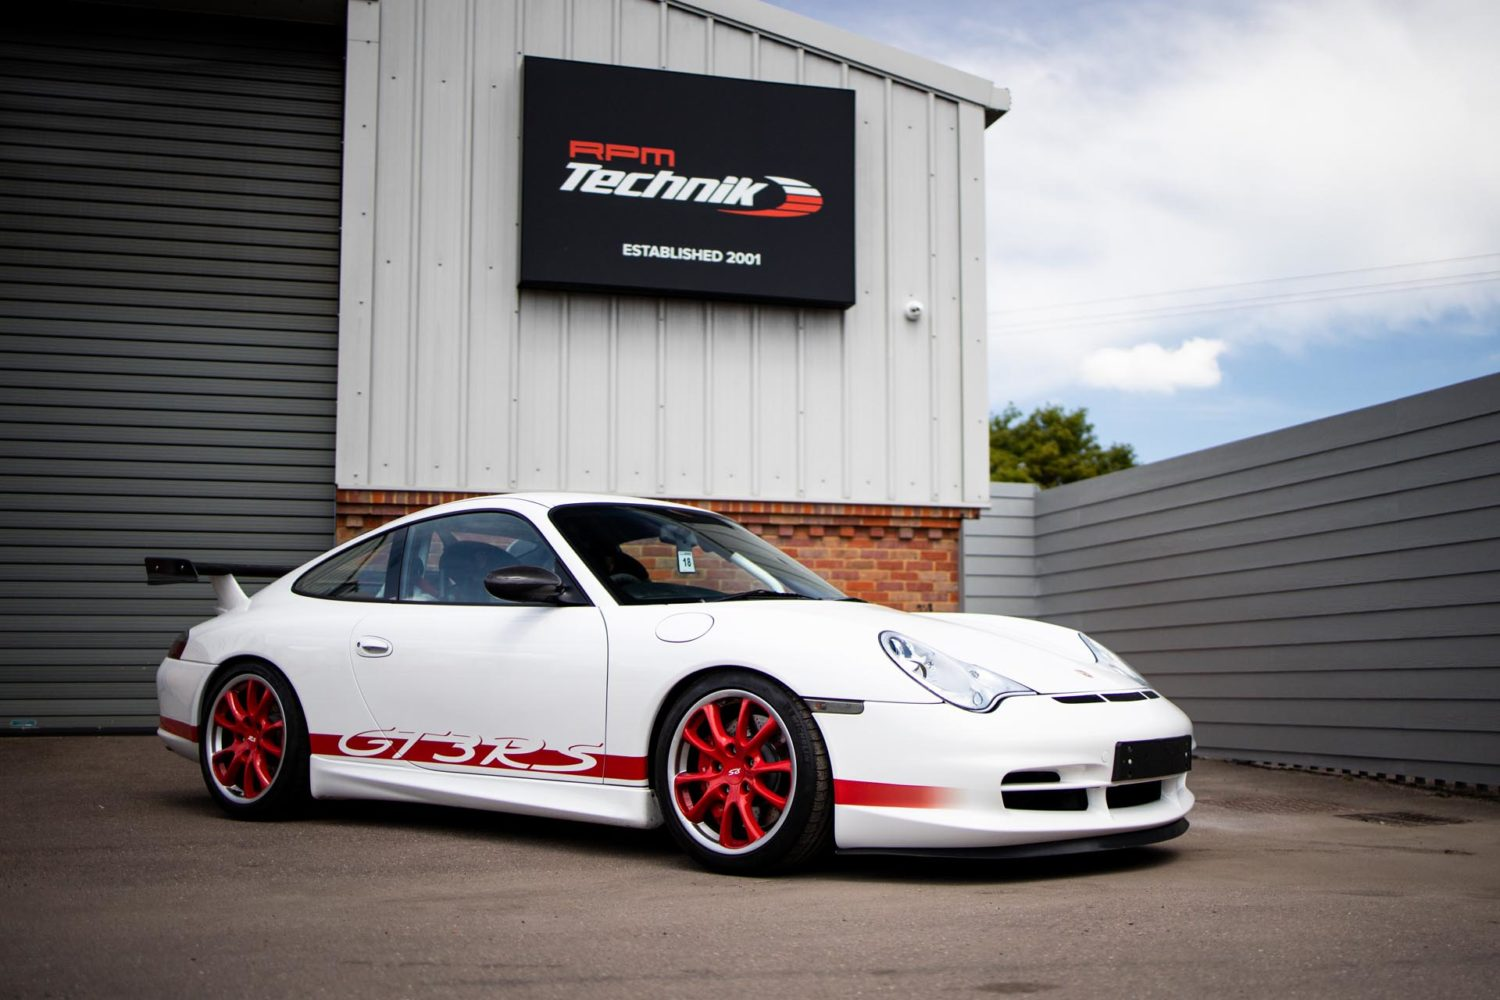 996 gt3rs outside RPM